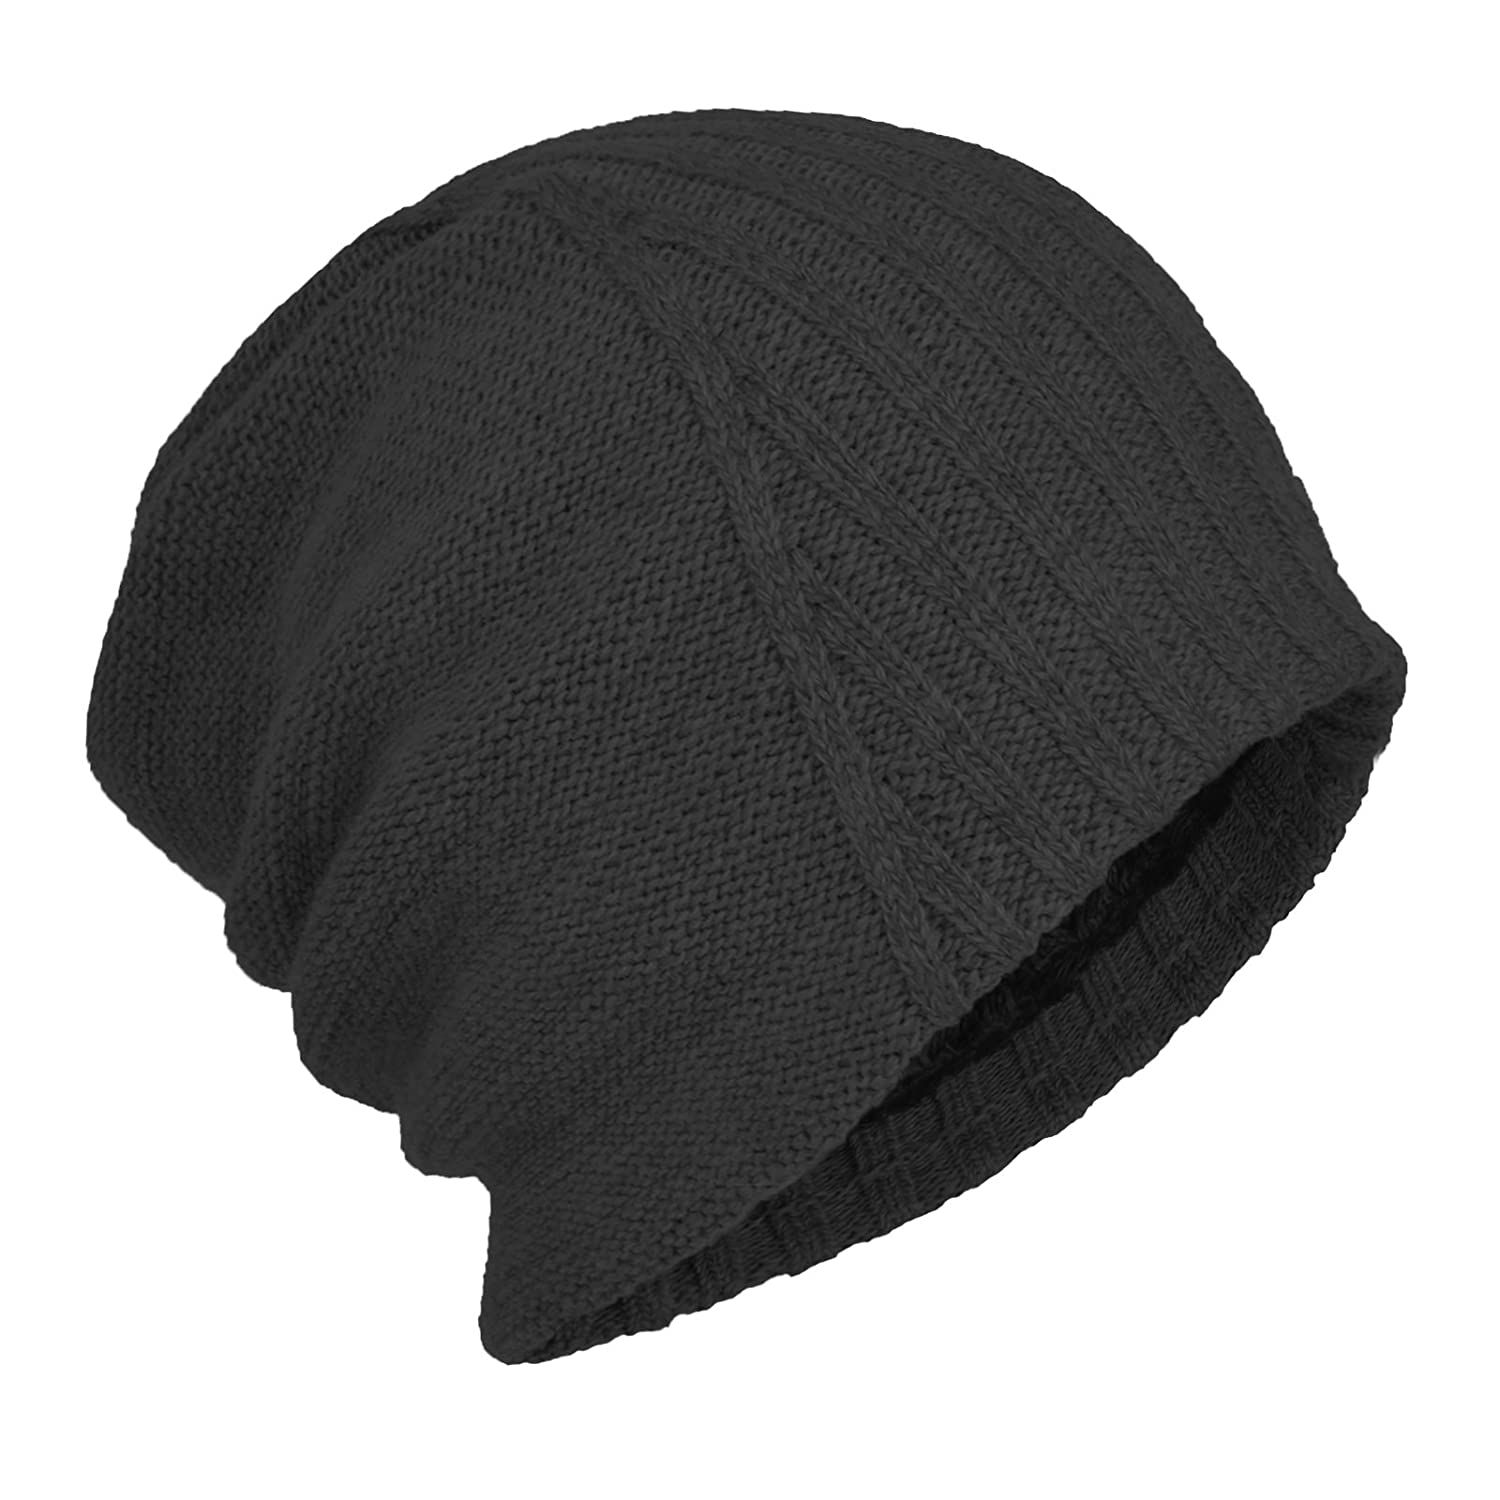 Janey Rubbins Winter Oversized Slouchy Style Beanie Fleece Lined Stocking  Skull Cap Knit Ski Hat (Black) at Amazon Men s Clothing store  e99ab306706